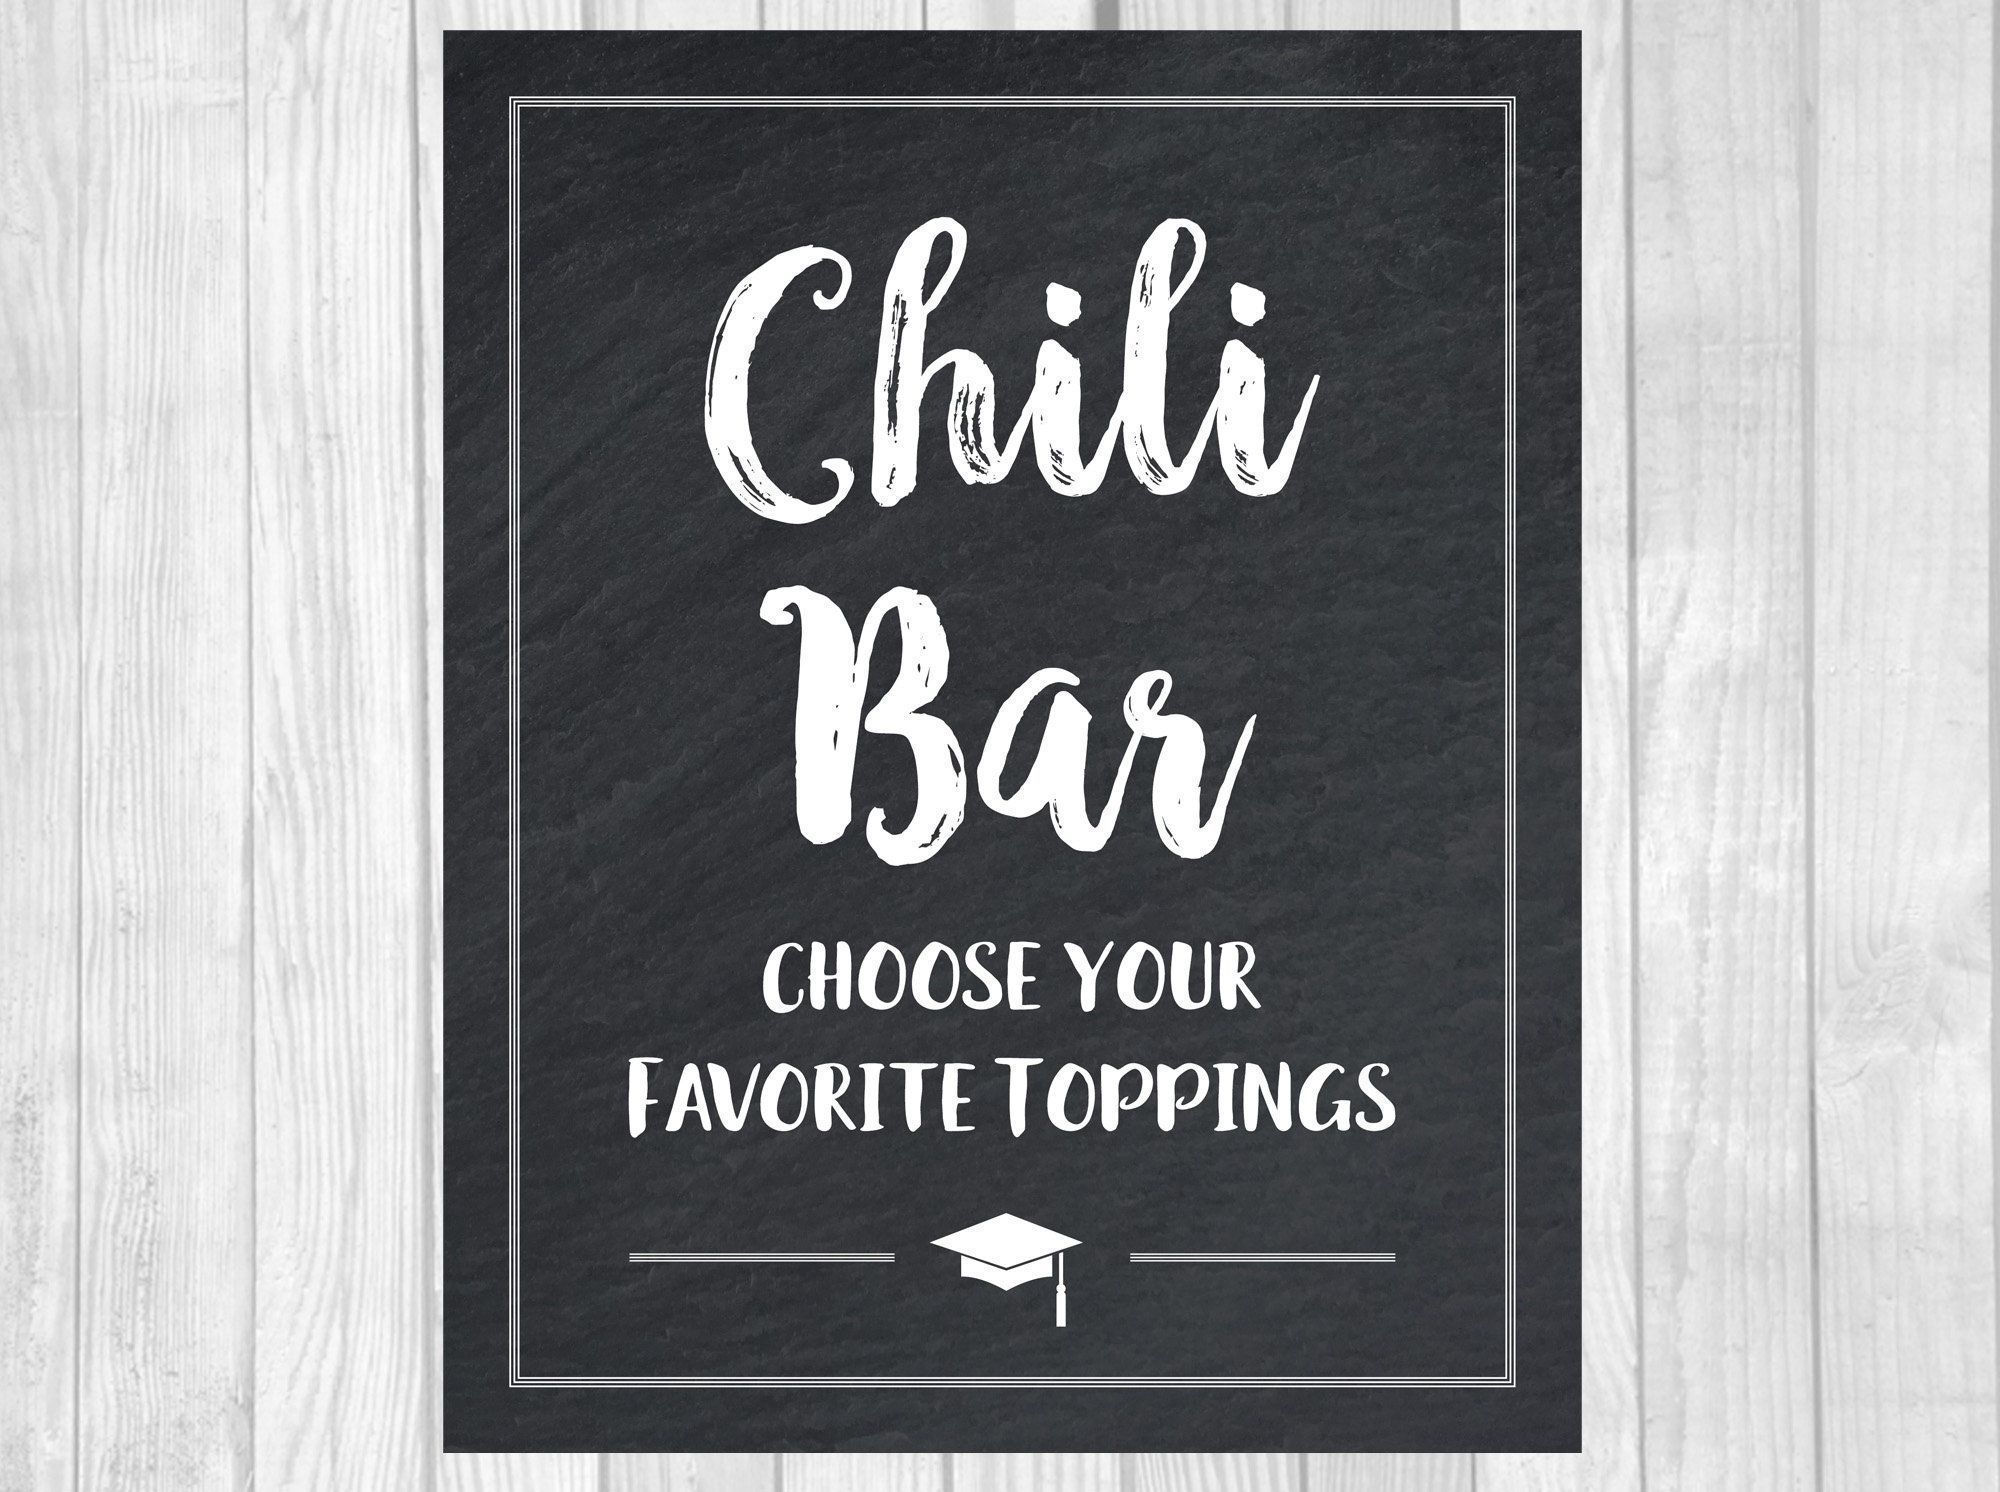 Graduation Party Chili Bar 5x7 Or 8x10 Printable